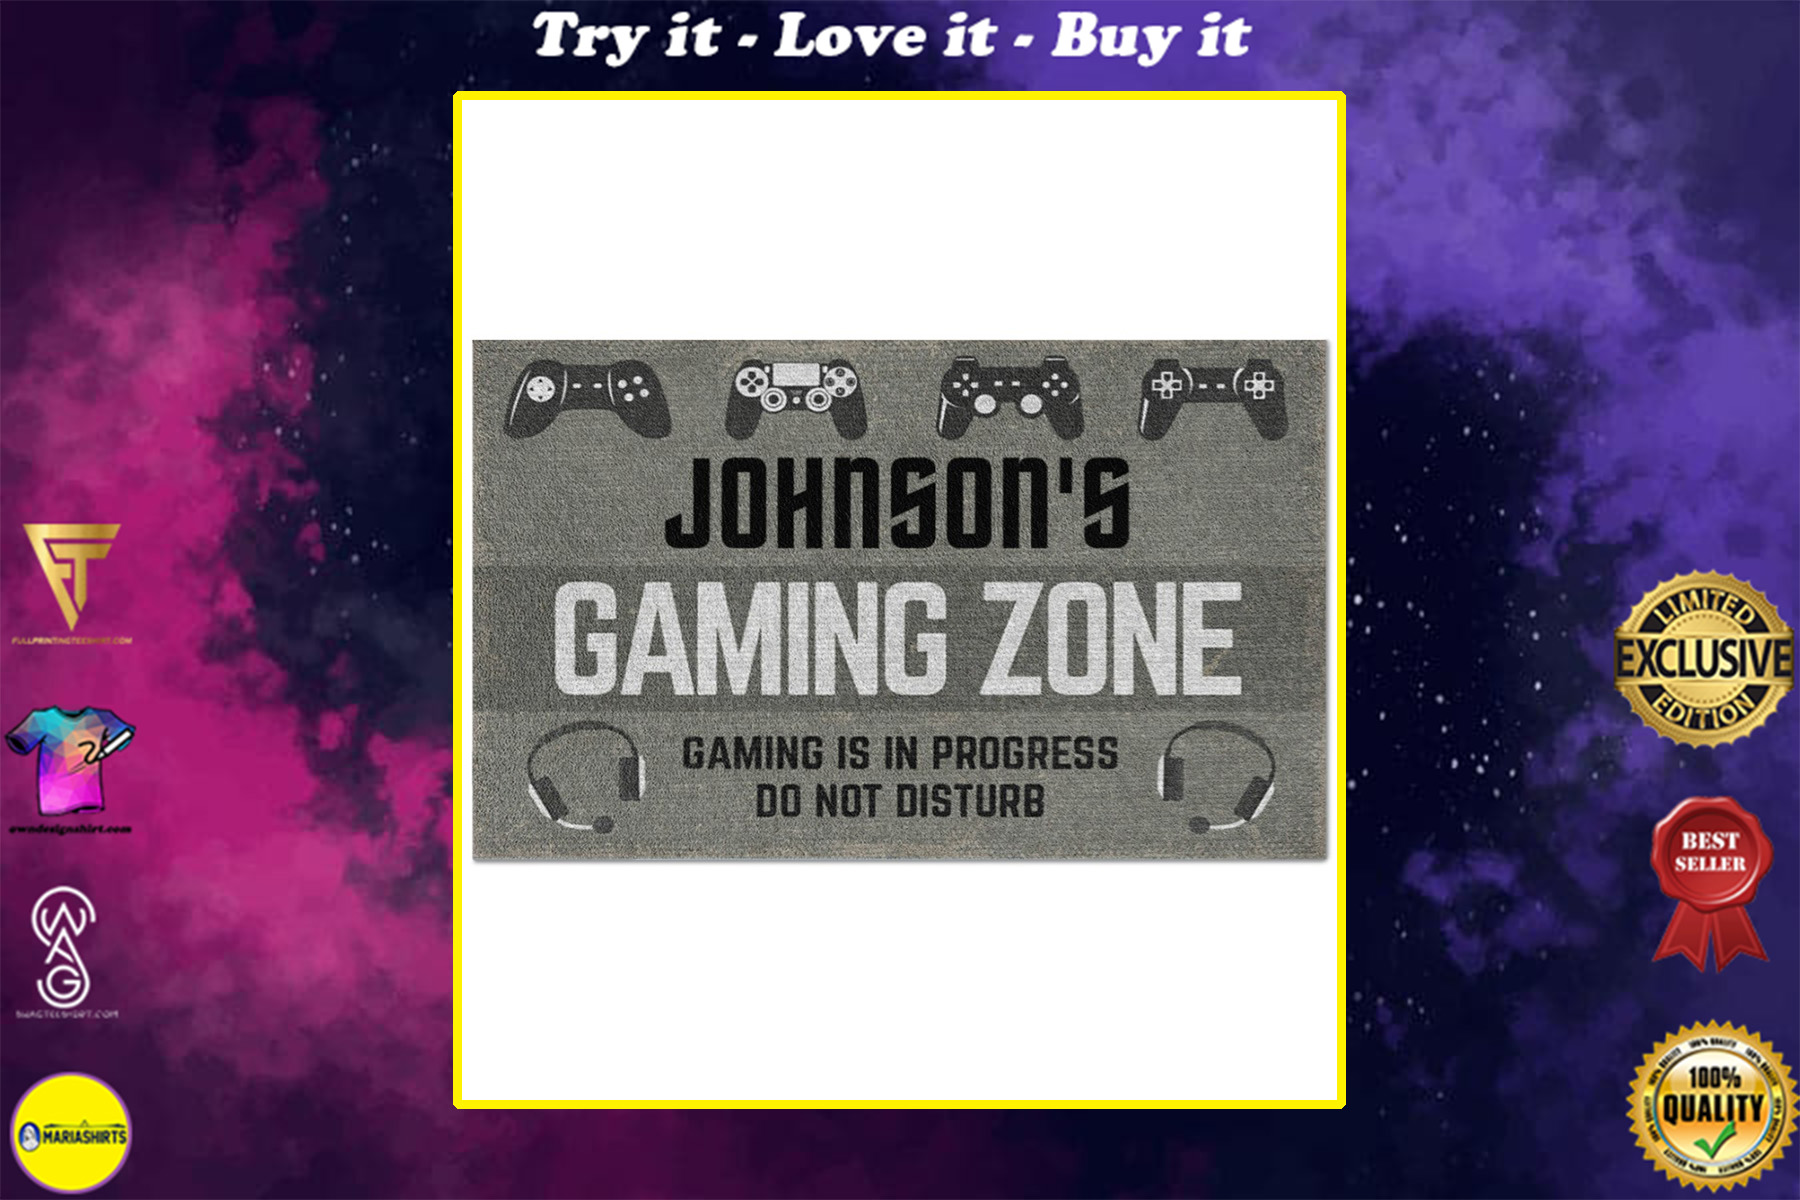 personalized gaming zone gaming is in progress do not disturb full printing doormat